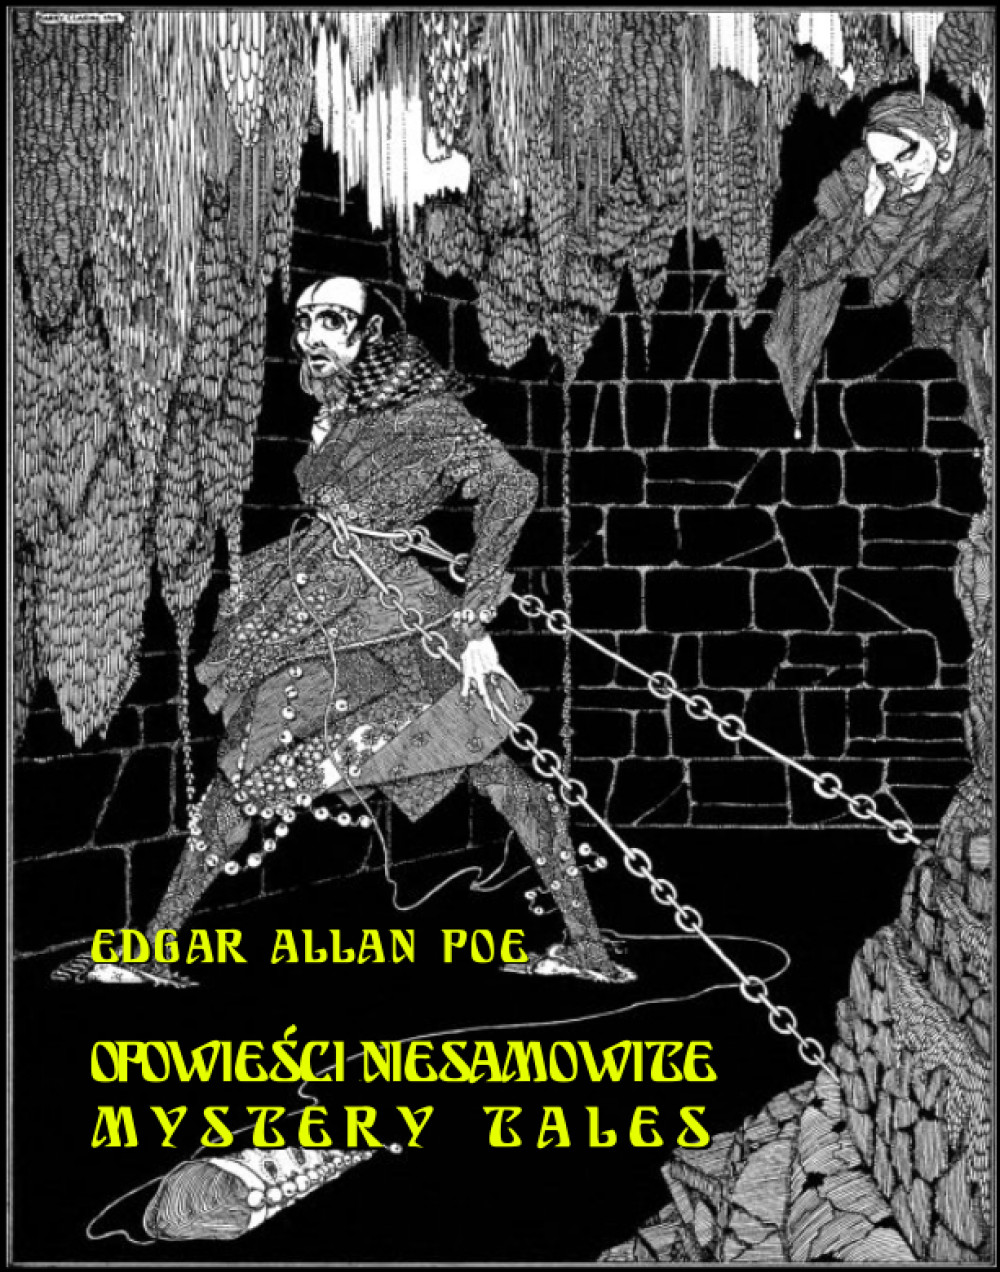 wishing death upon others in the short stories the cask of amontillado by edgar allan poe and the st The story of the cask of amontillado by edgar allan poe is full of conflict from beginning to end the narrator of this story does not reveal why such a conflict exists other than to say someone has impugned his honor poe makes use of irony, symbolism among other linguistics means to tell a.